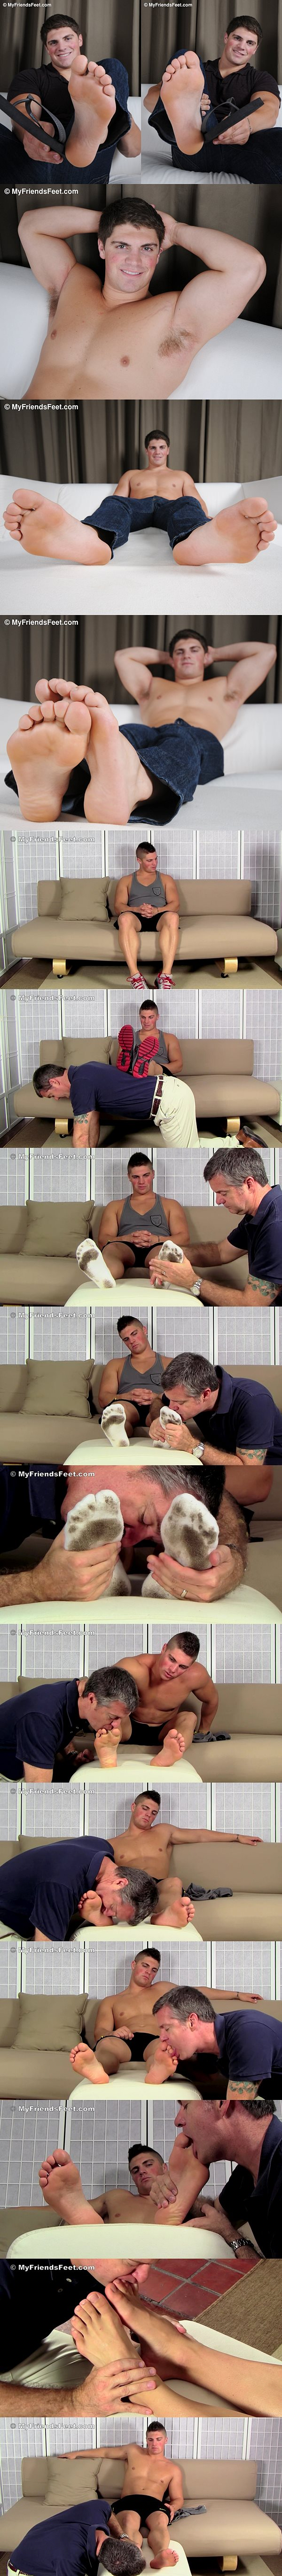 Super handsome muscle jock Dominic (aka Harrison at Seancody) foot worshiped at Myfriendsfeet 02